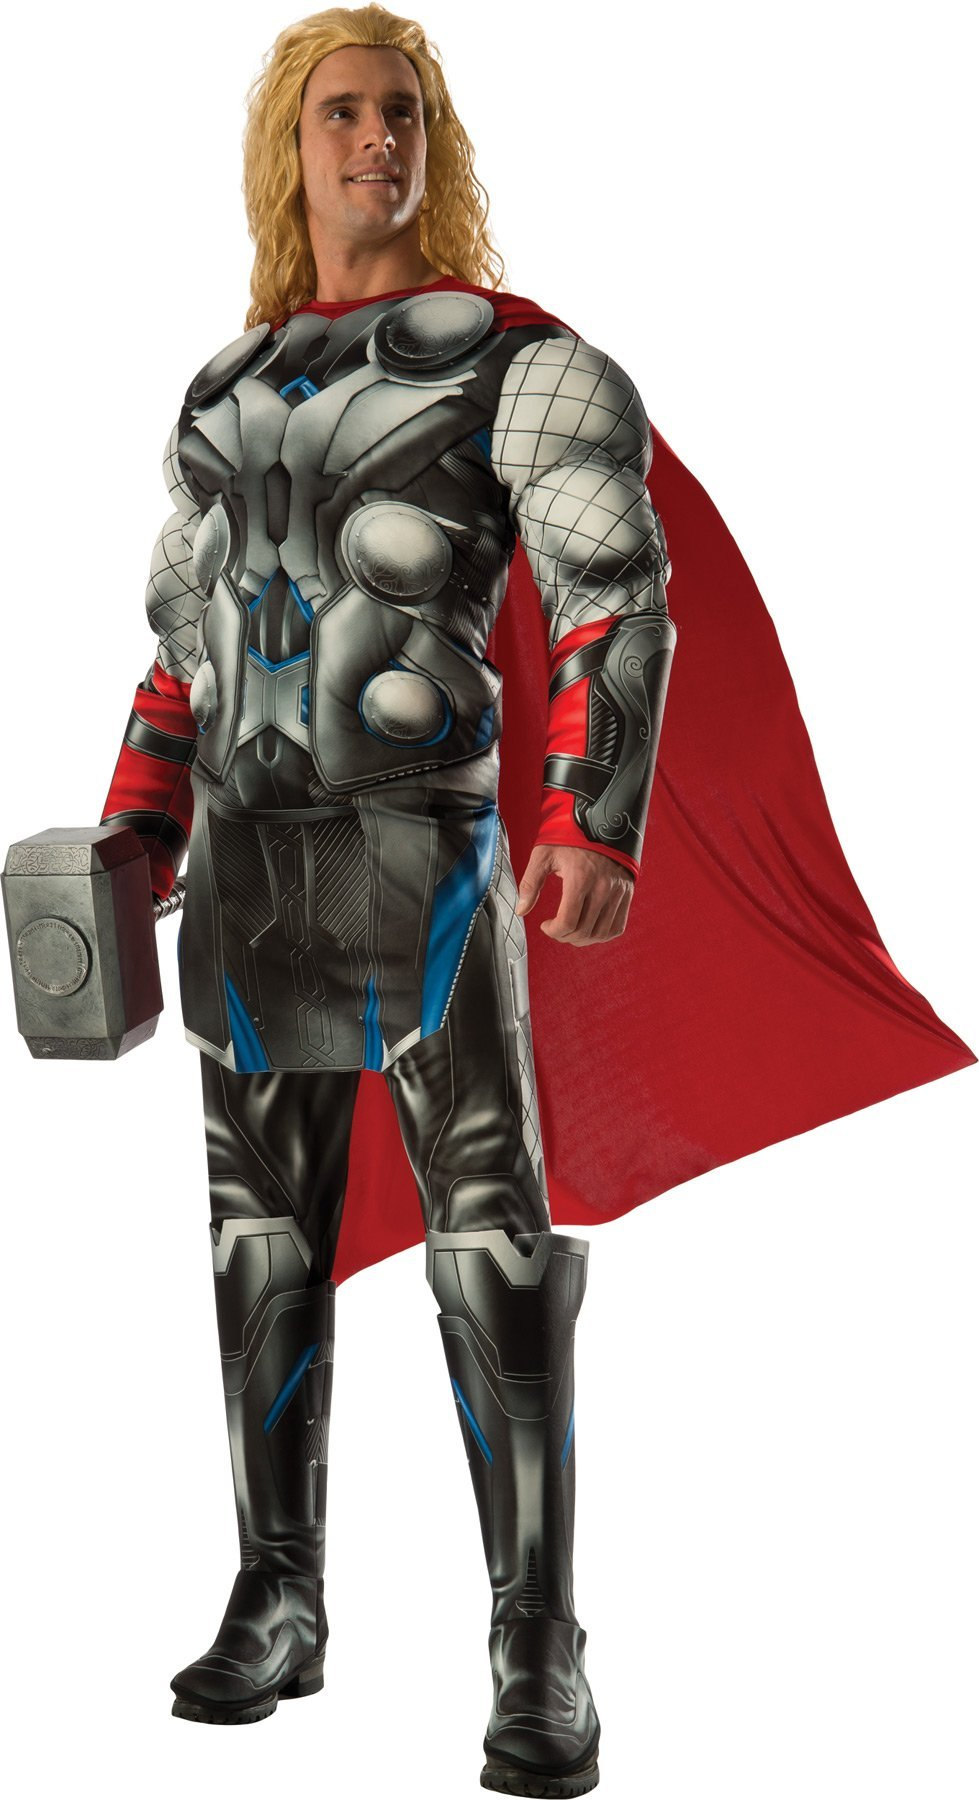 Thor Costume - Hire - The Costume Company | Australian & Family Owned